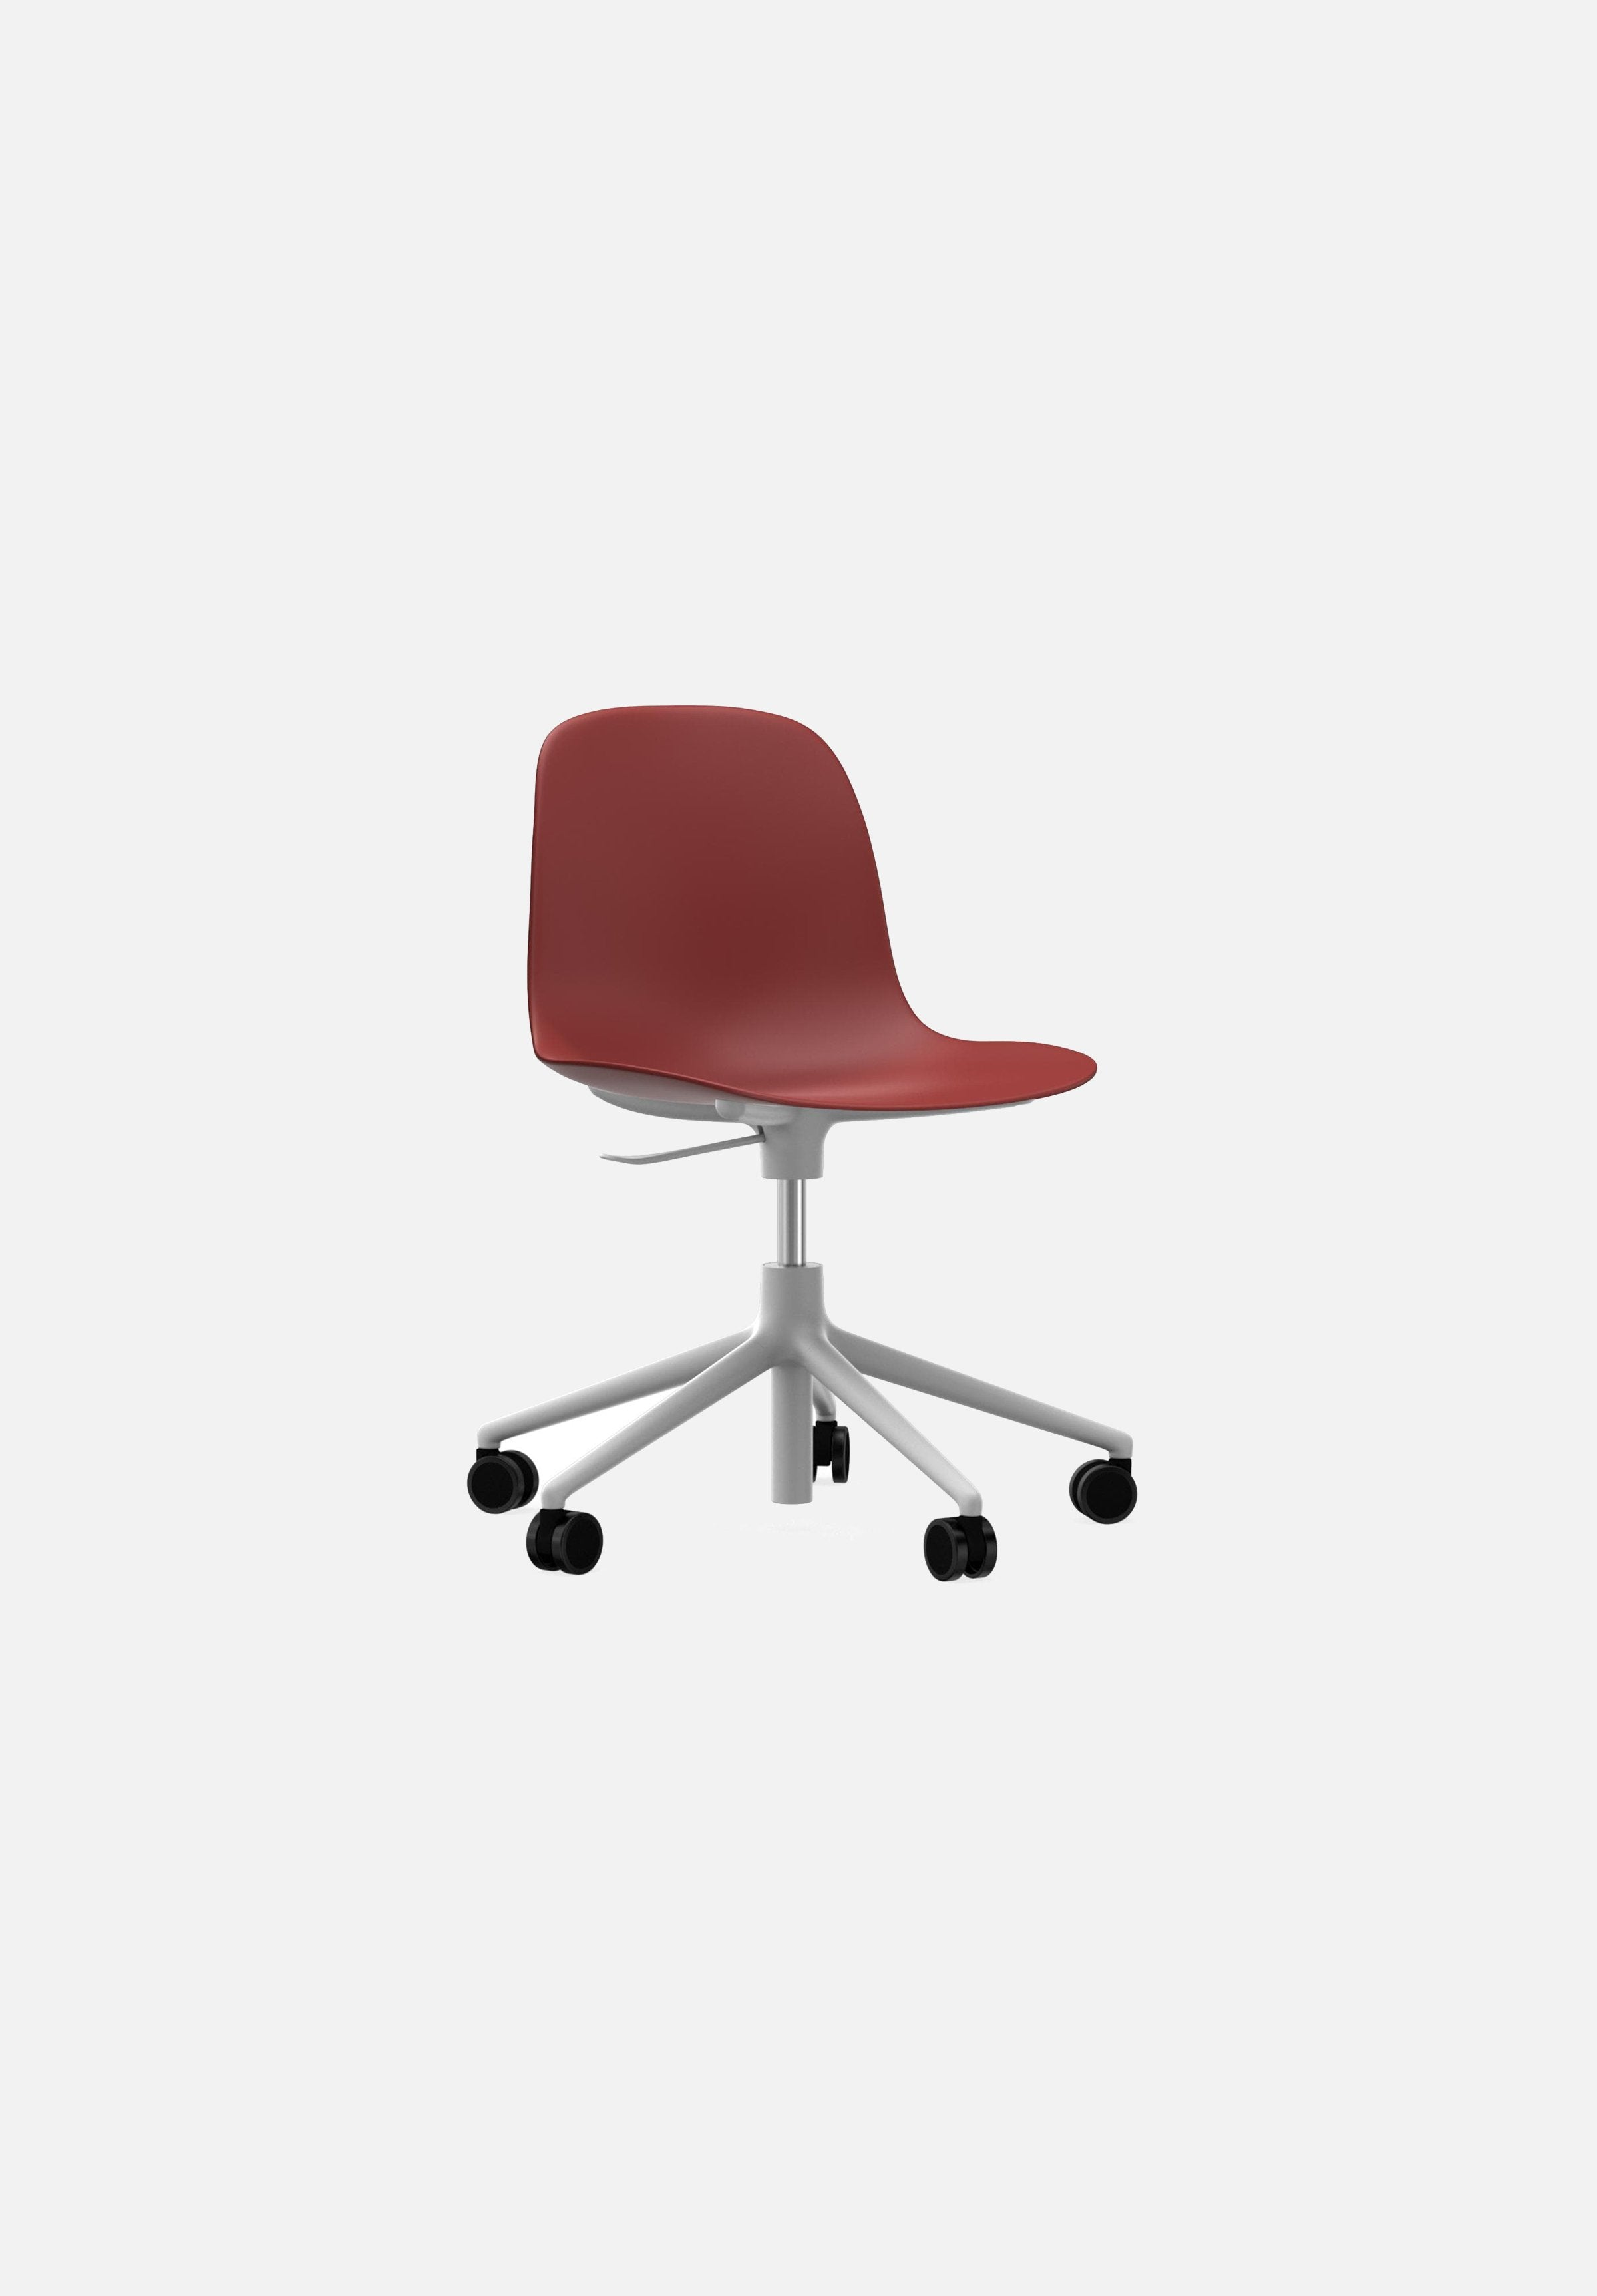 Form Chair — Swivel Gaslift-Simon Legald-Normann Copenhagen-Red-White Aluminum-Average